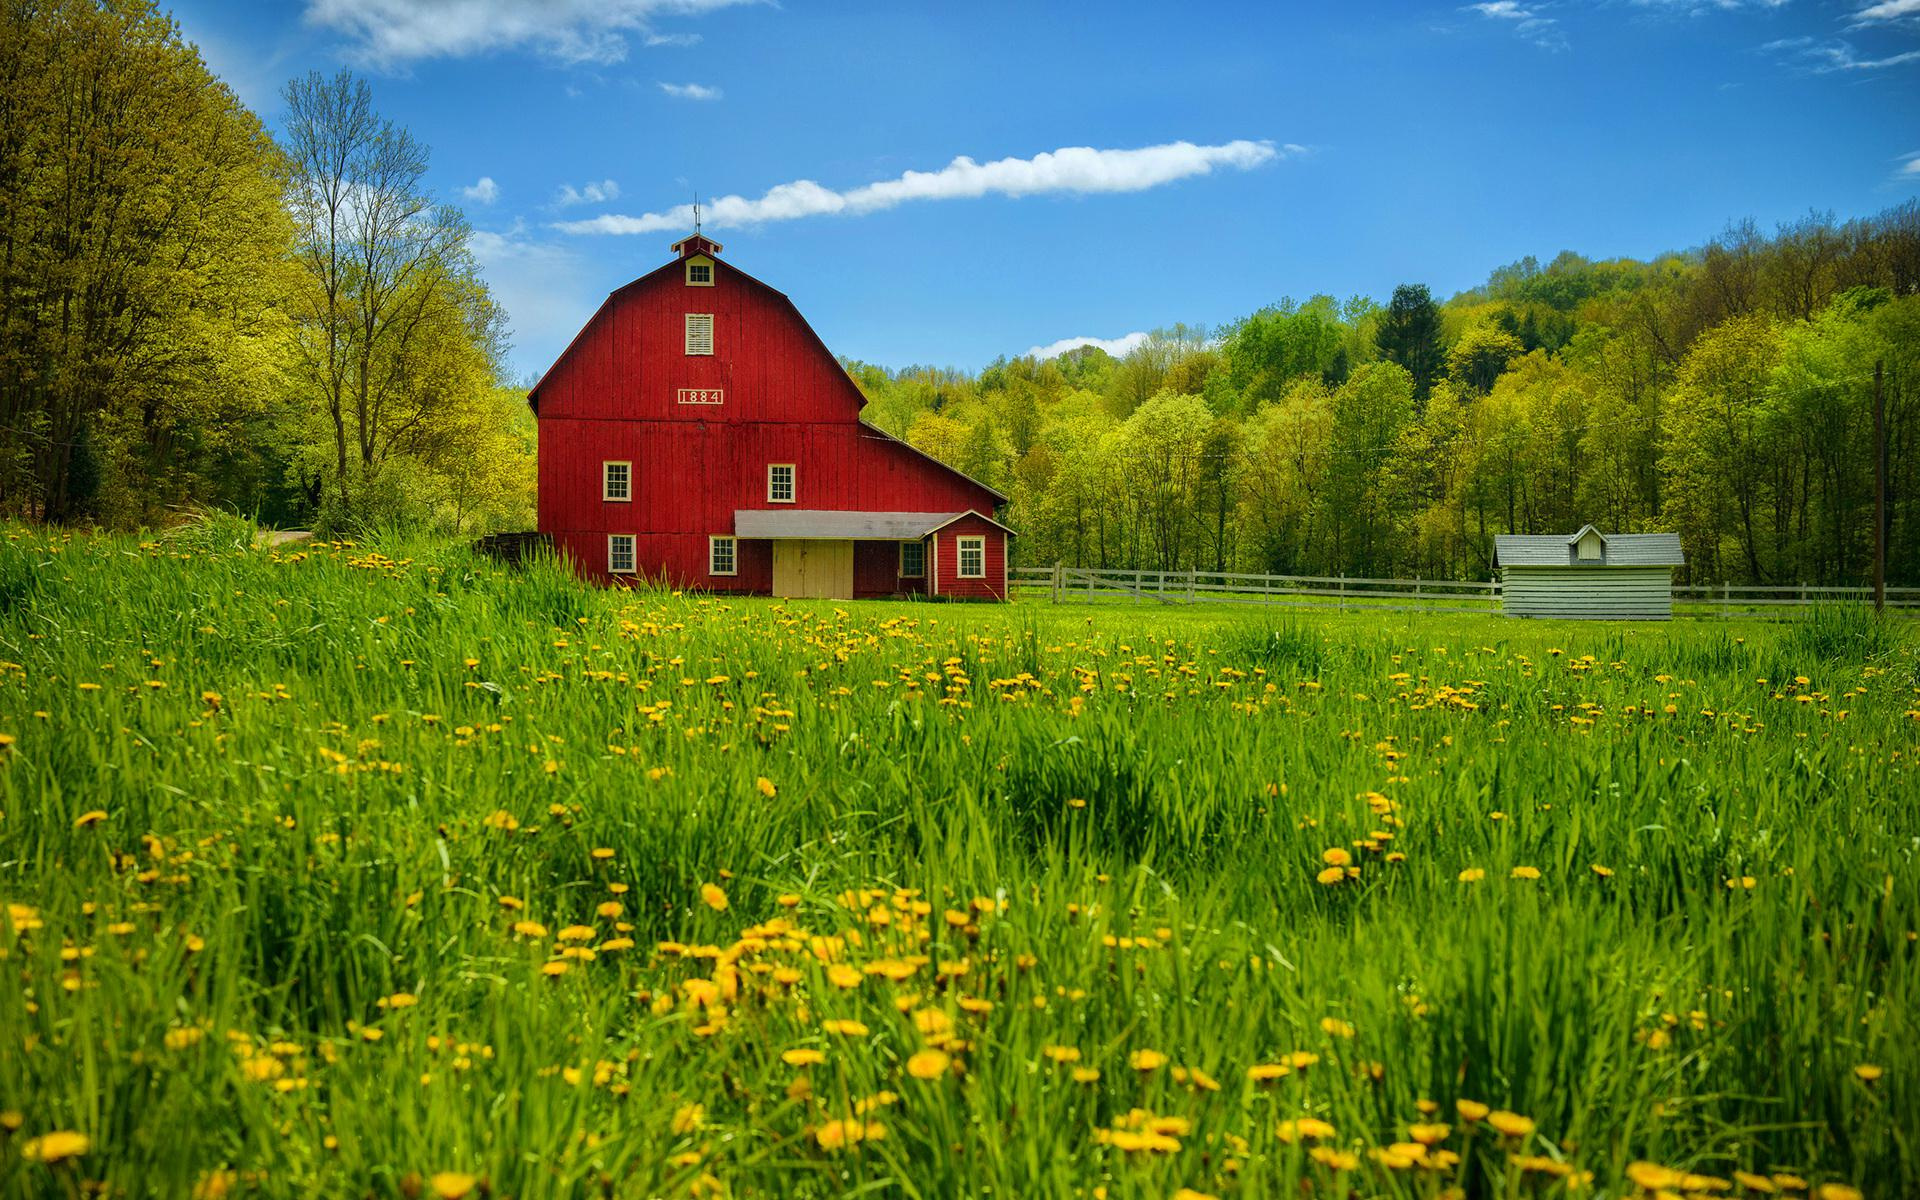 Swallow together with Top Six Exterior Siding Options furthermore Red Barn furthermore Rustic Cottage With Red Trim Windows And Dark Wood Rustic Siding also Farms Agriculture. on red barn farm